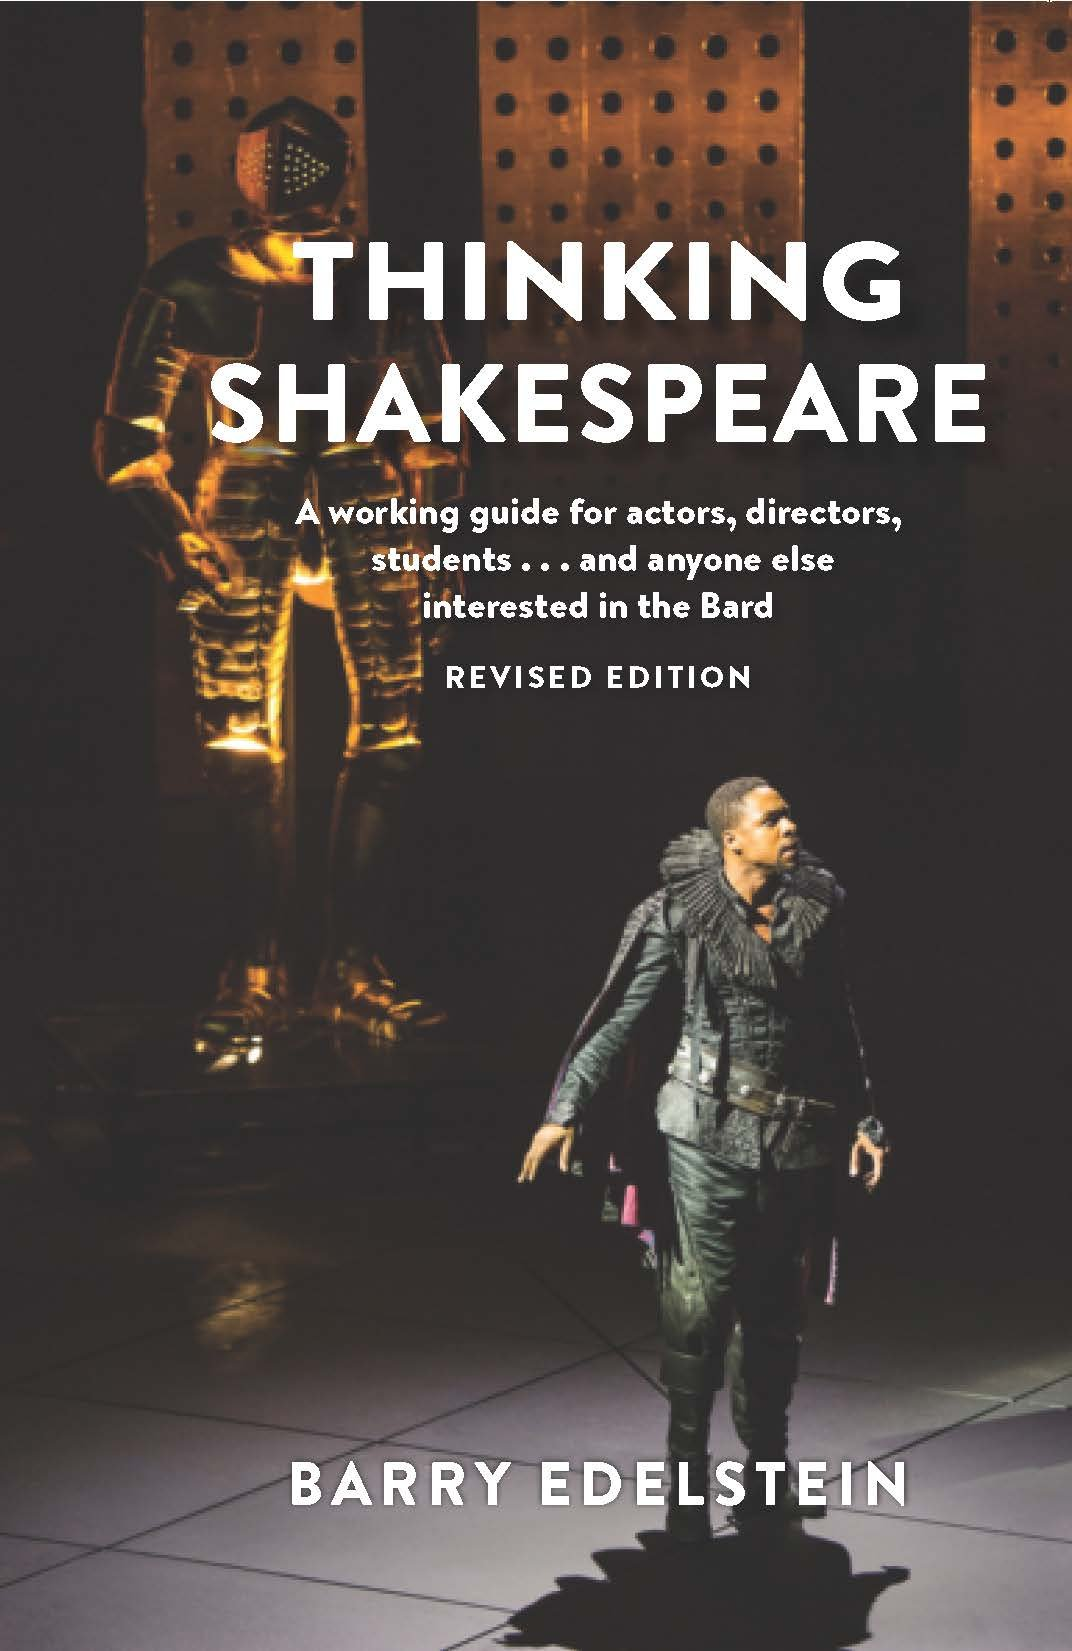 Download Thinking Shakespeare (Revised Edition): A working guide for actors, directors, students…and anyone else interested in the Bard pdf epub